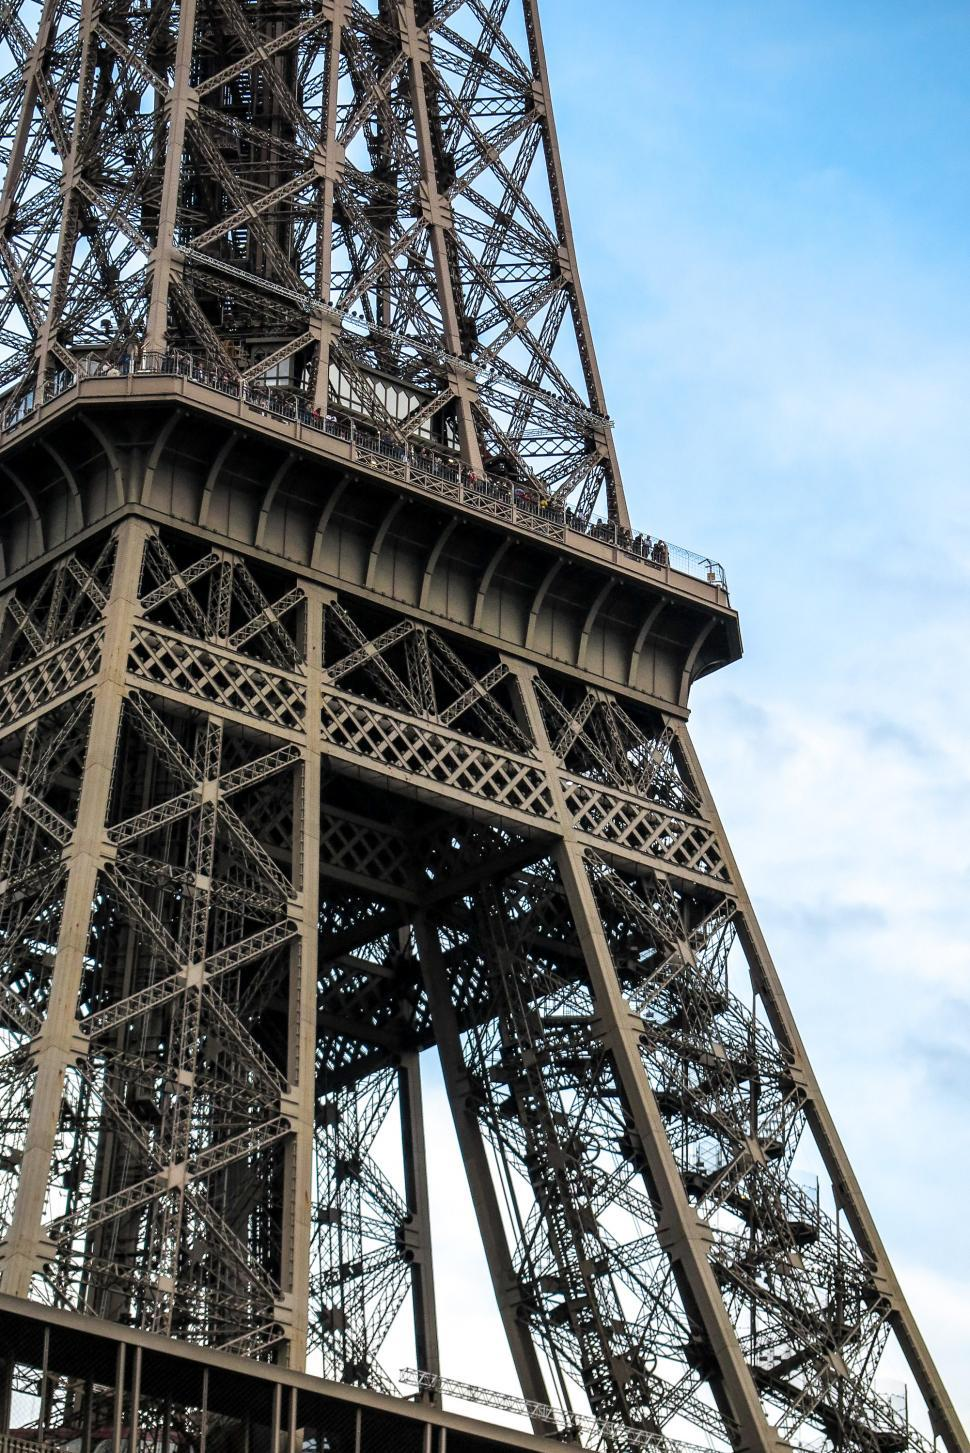 Download Free Stock Photo of Eiffel Tower structure